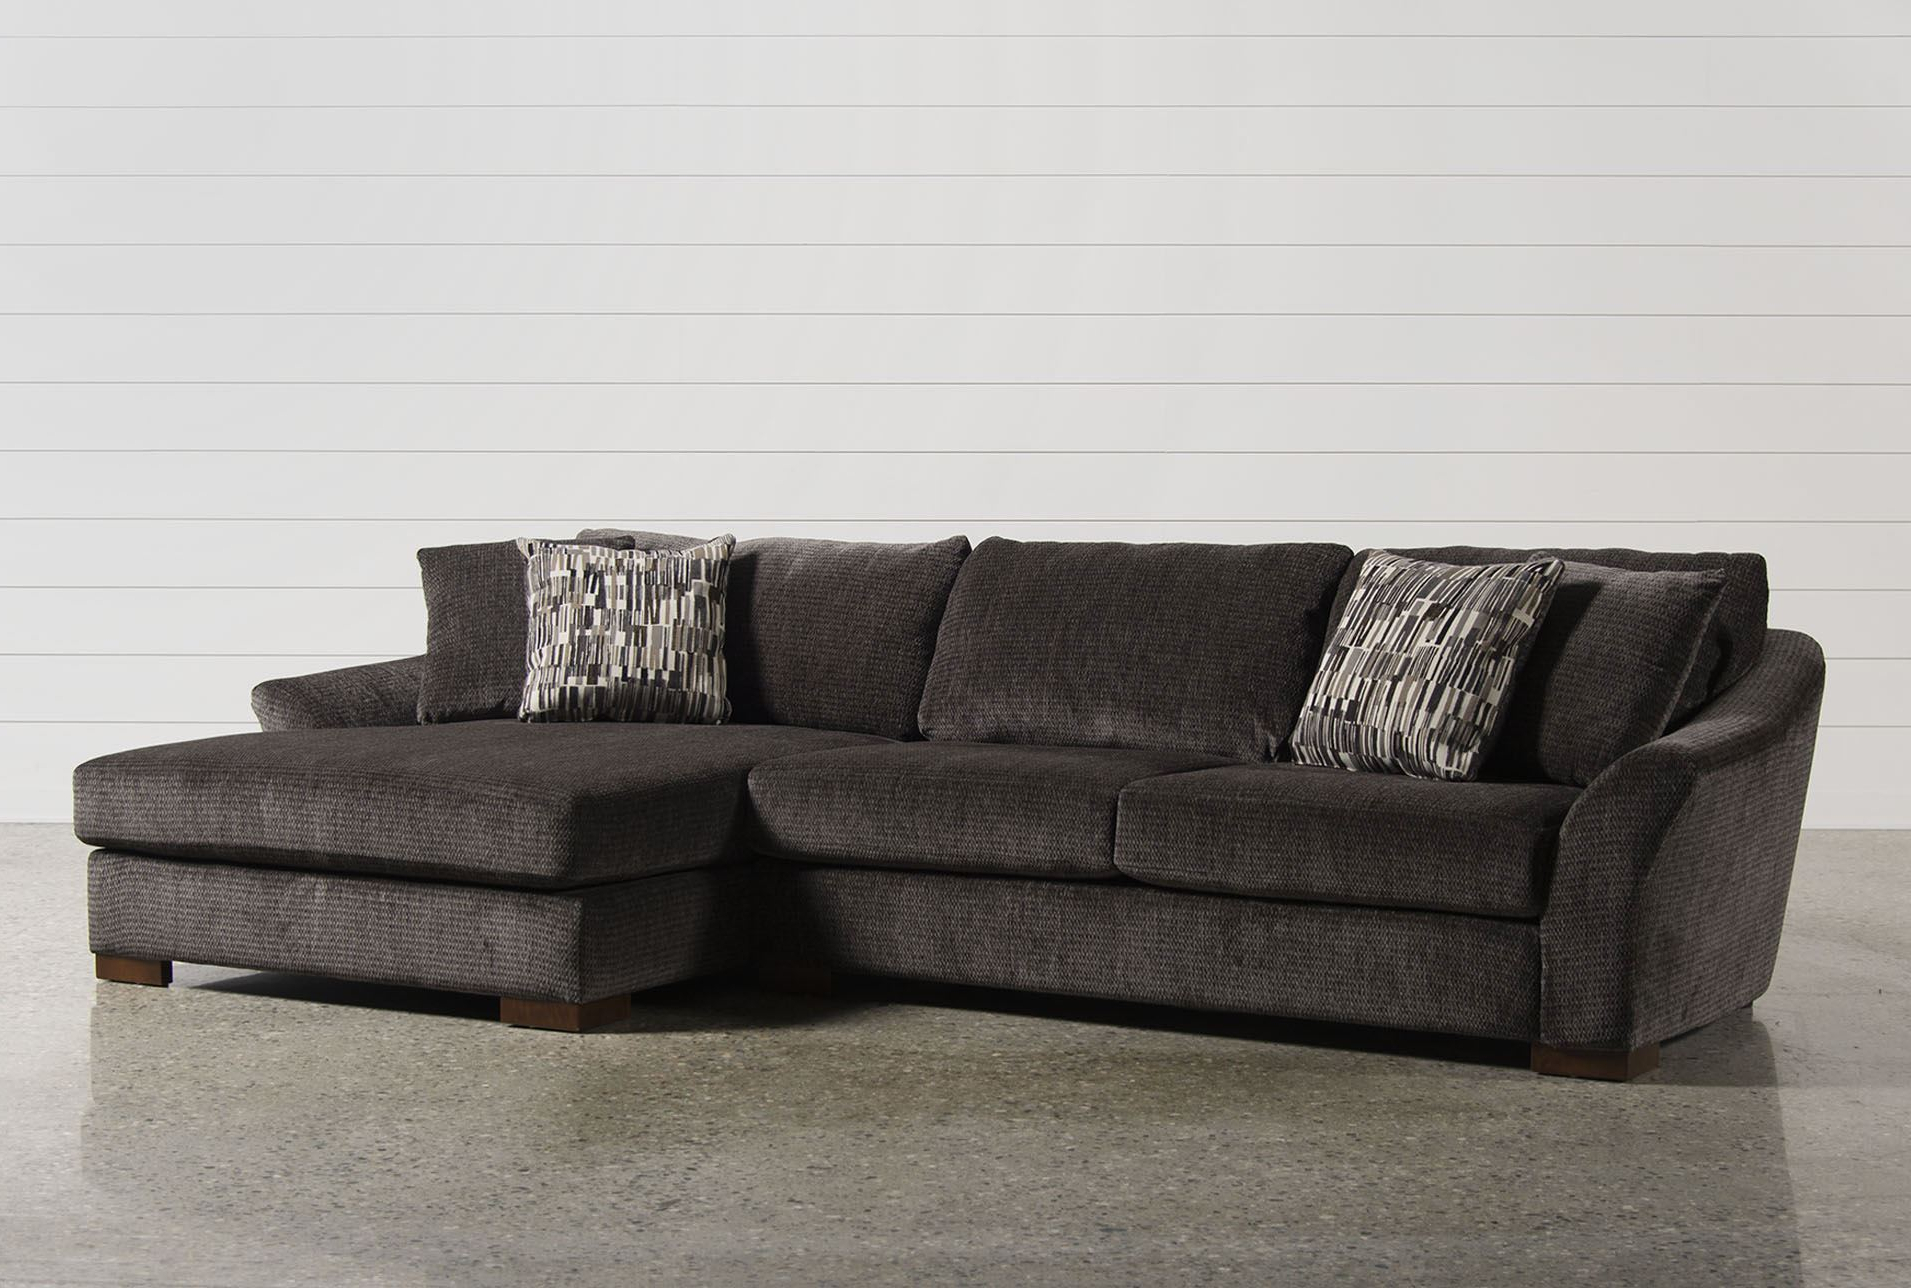 Kuxniya Throughout Widely Used Tenny Dark Grey 2 Piece Left Facing Chaise Sectionals With 2 Headrest (View 6 of 20)